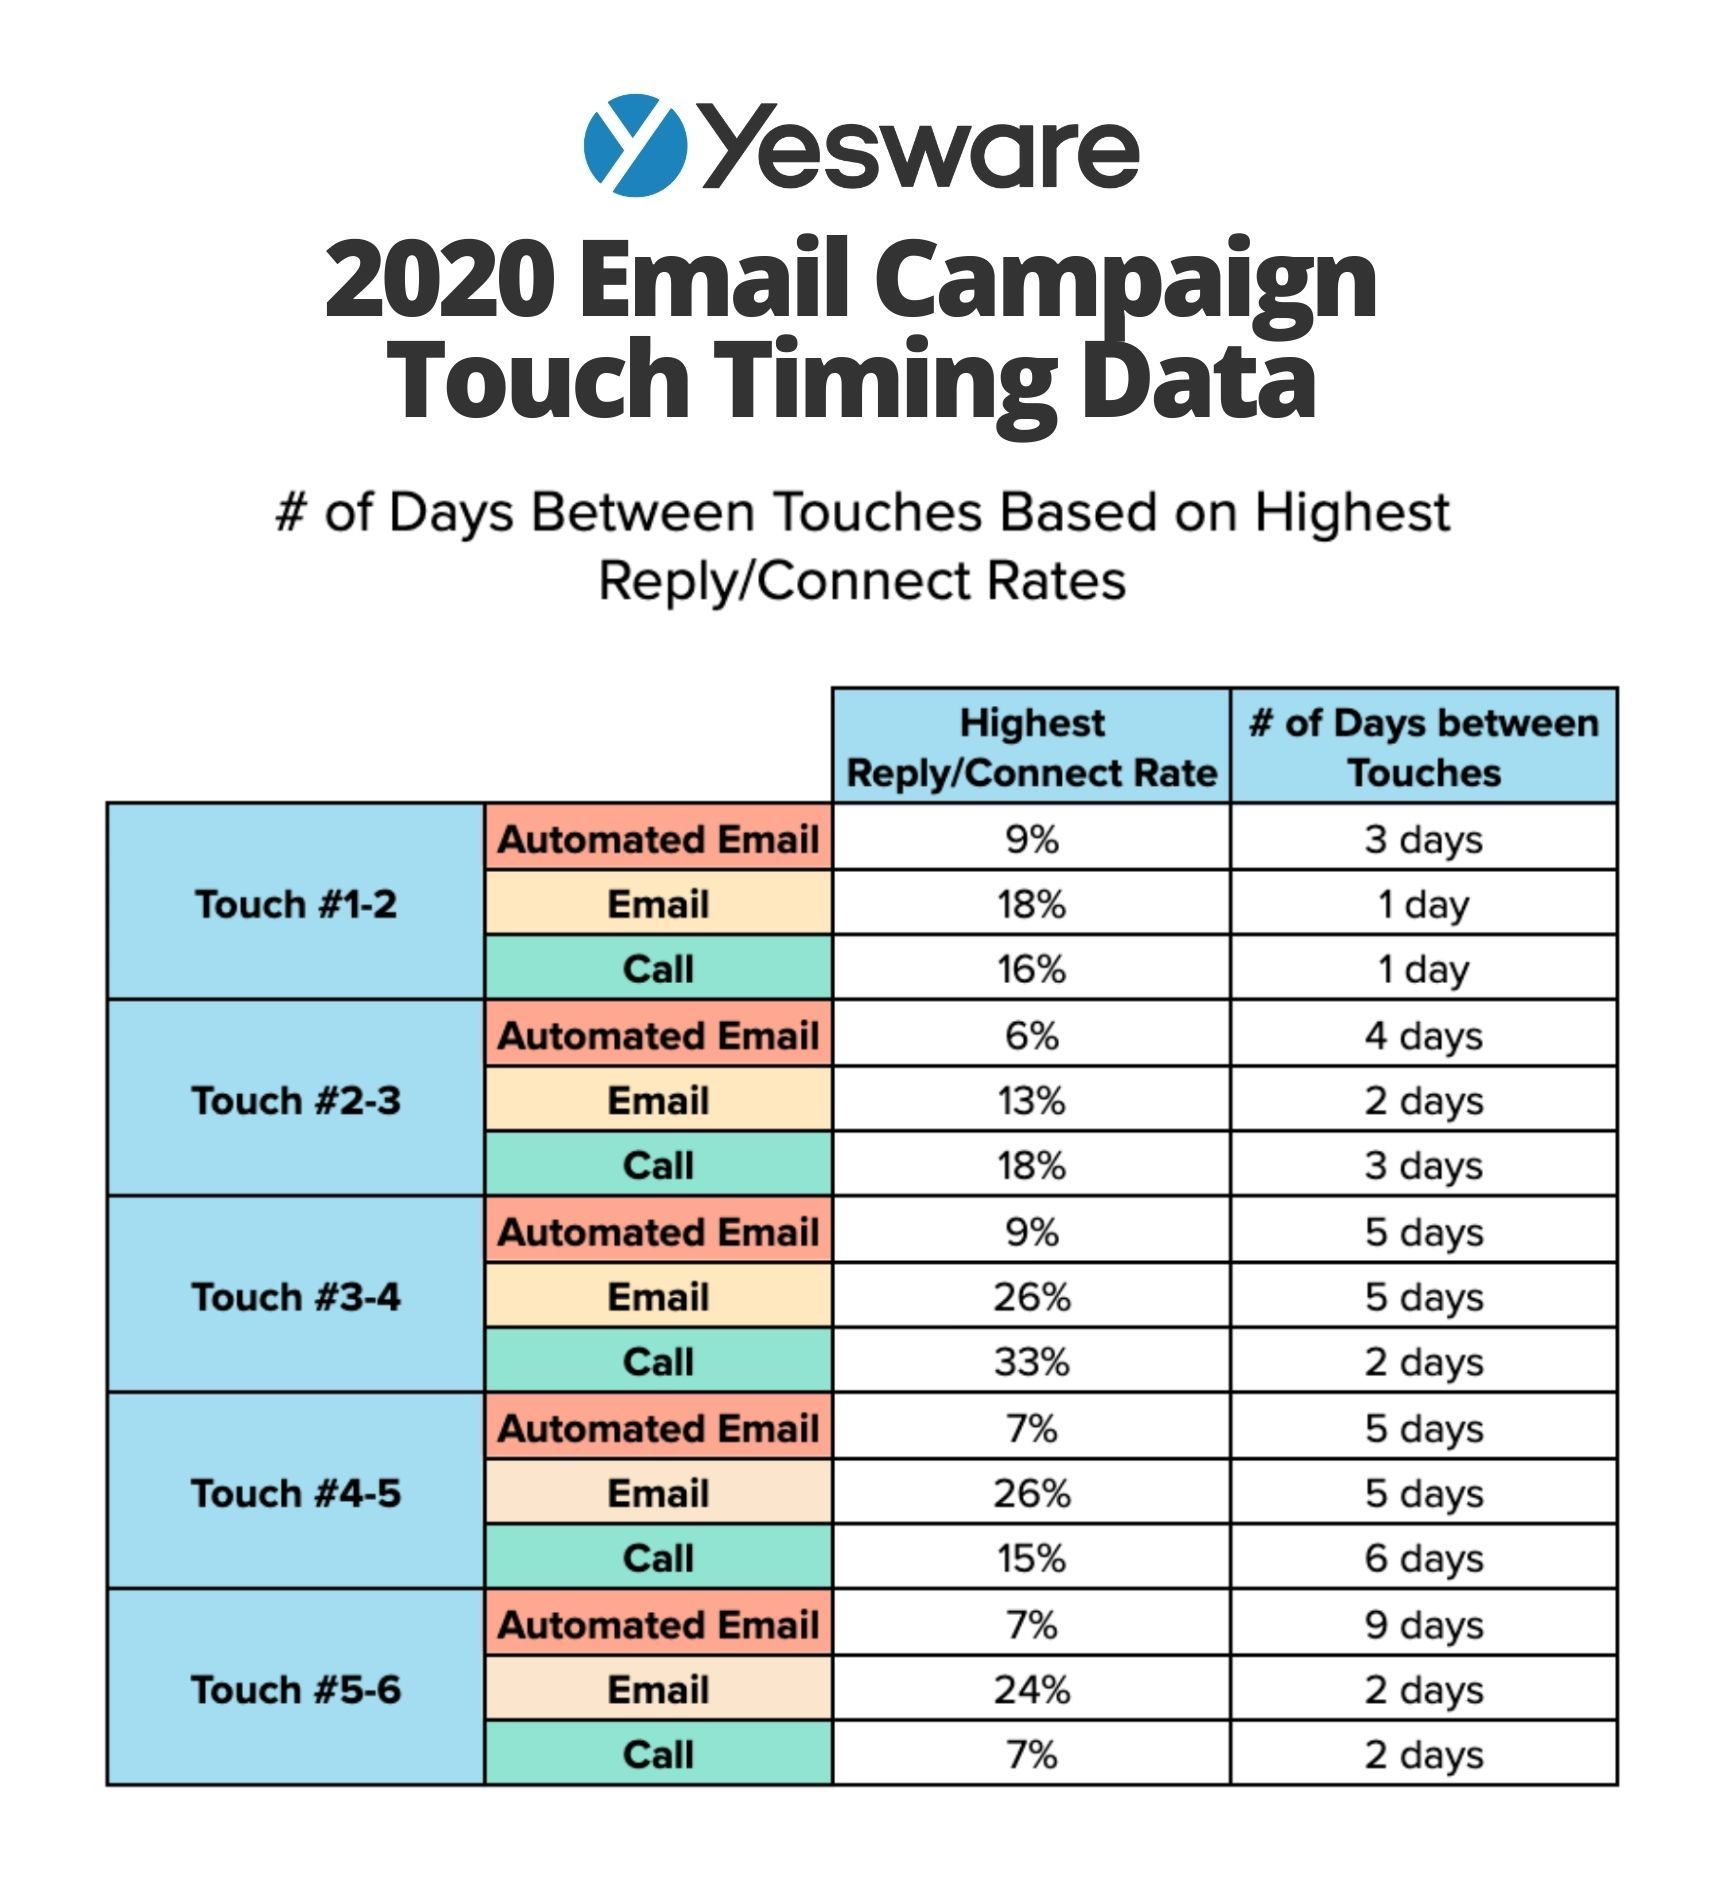 Yesware sales cadence 2020 email campaign touch timing data